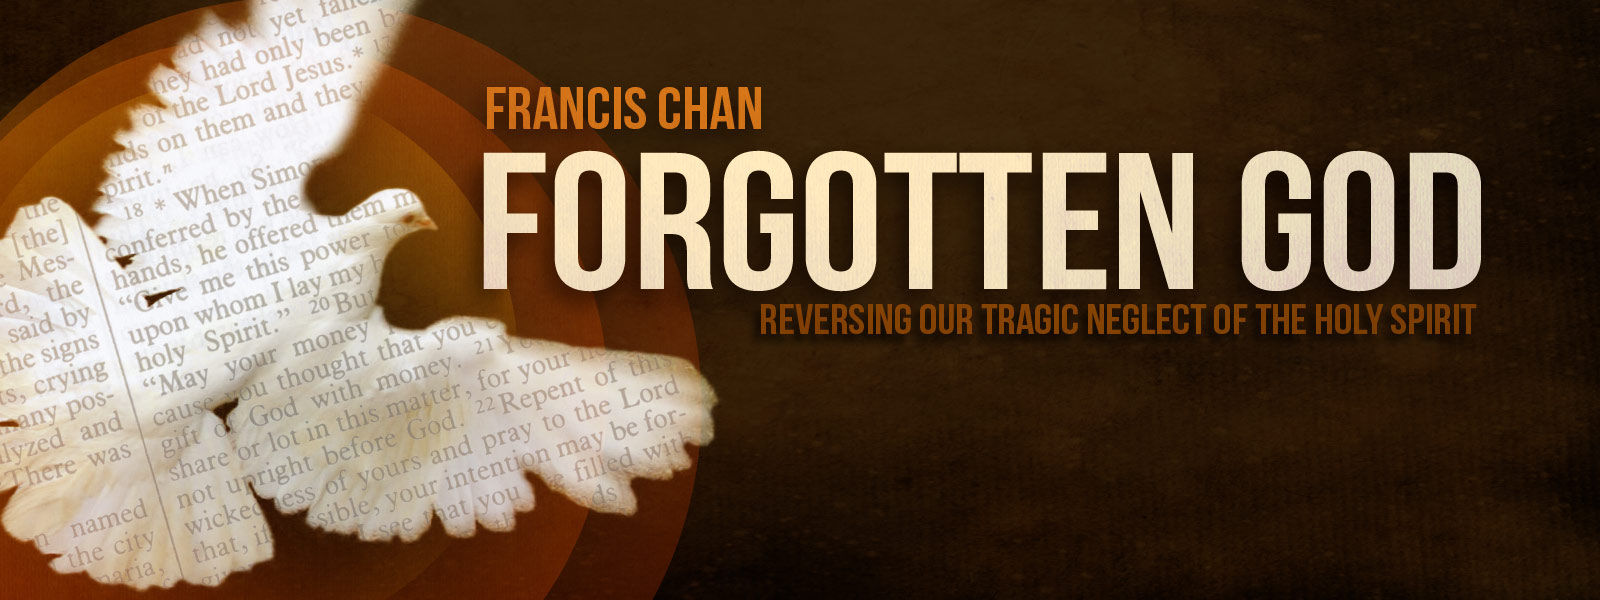 Image result for forgotten god francis chan